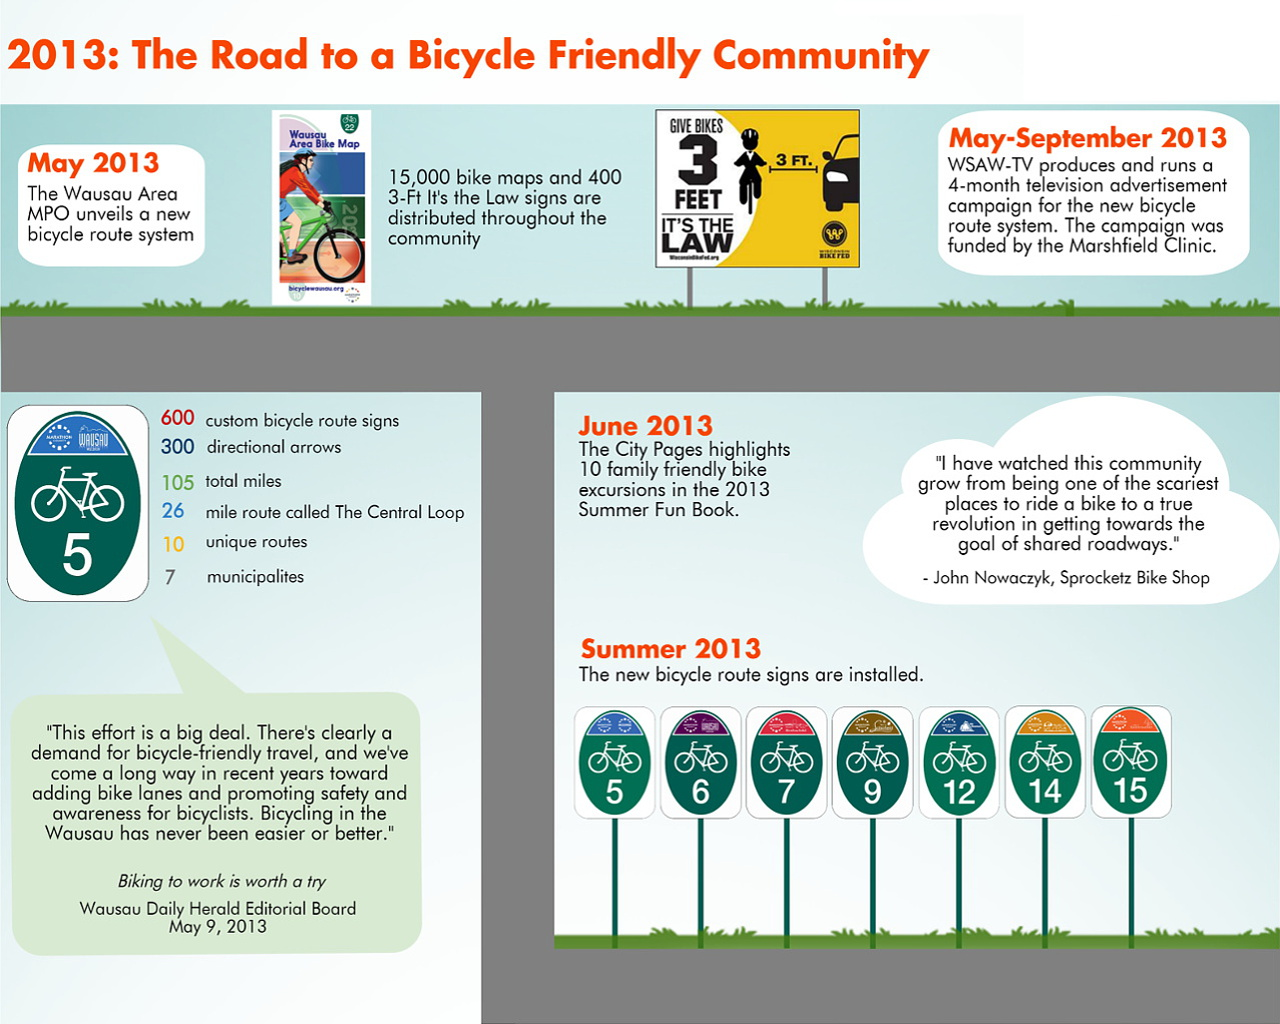 2013: The Road to a Bicycle Friendly Community